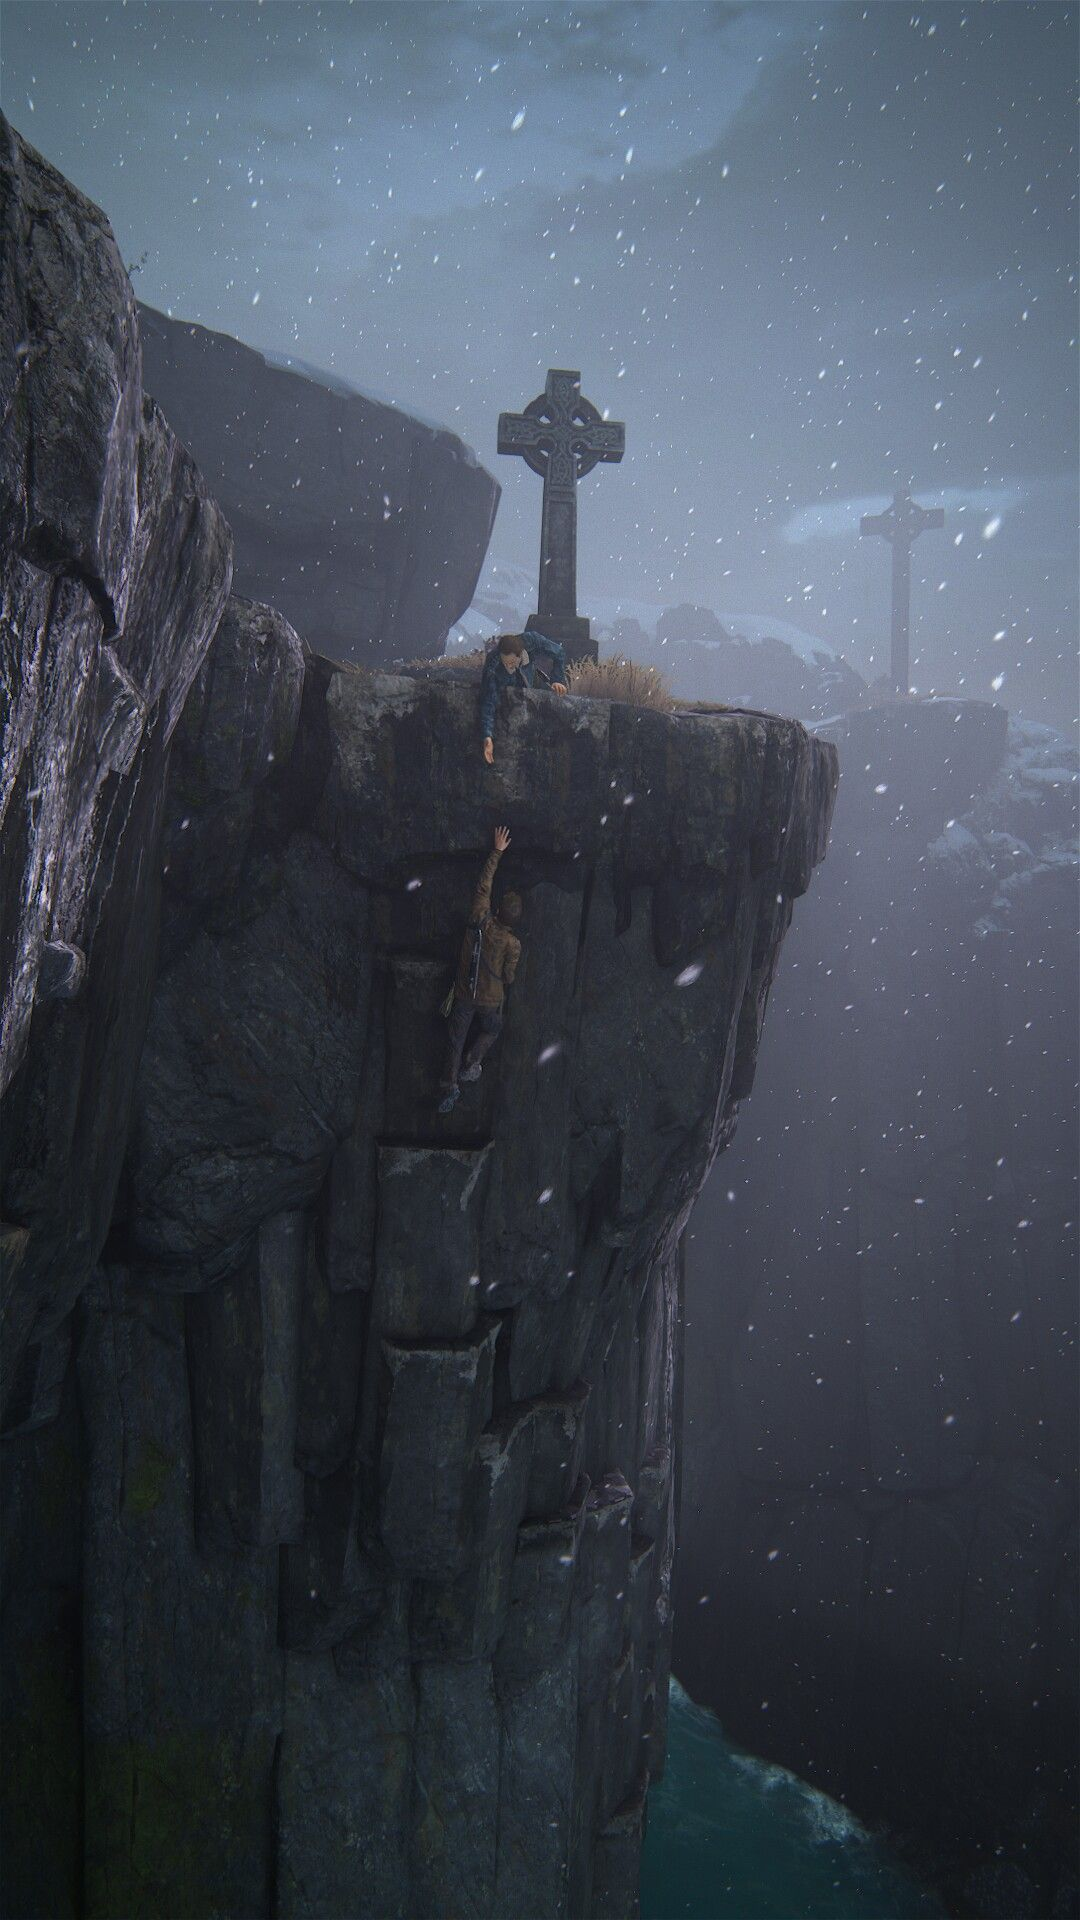 Cool Uncharted 4 Wallpaper In 2020 Uncharted Drake Uncharted